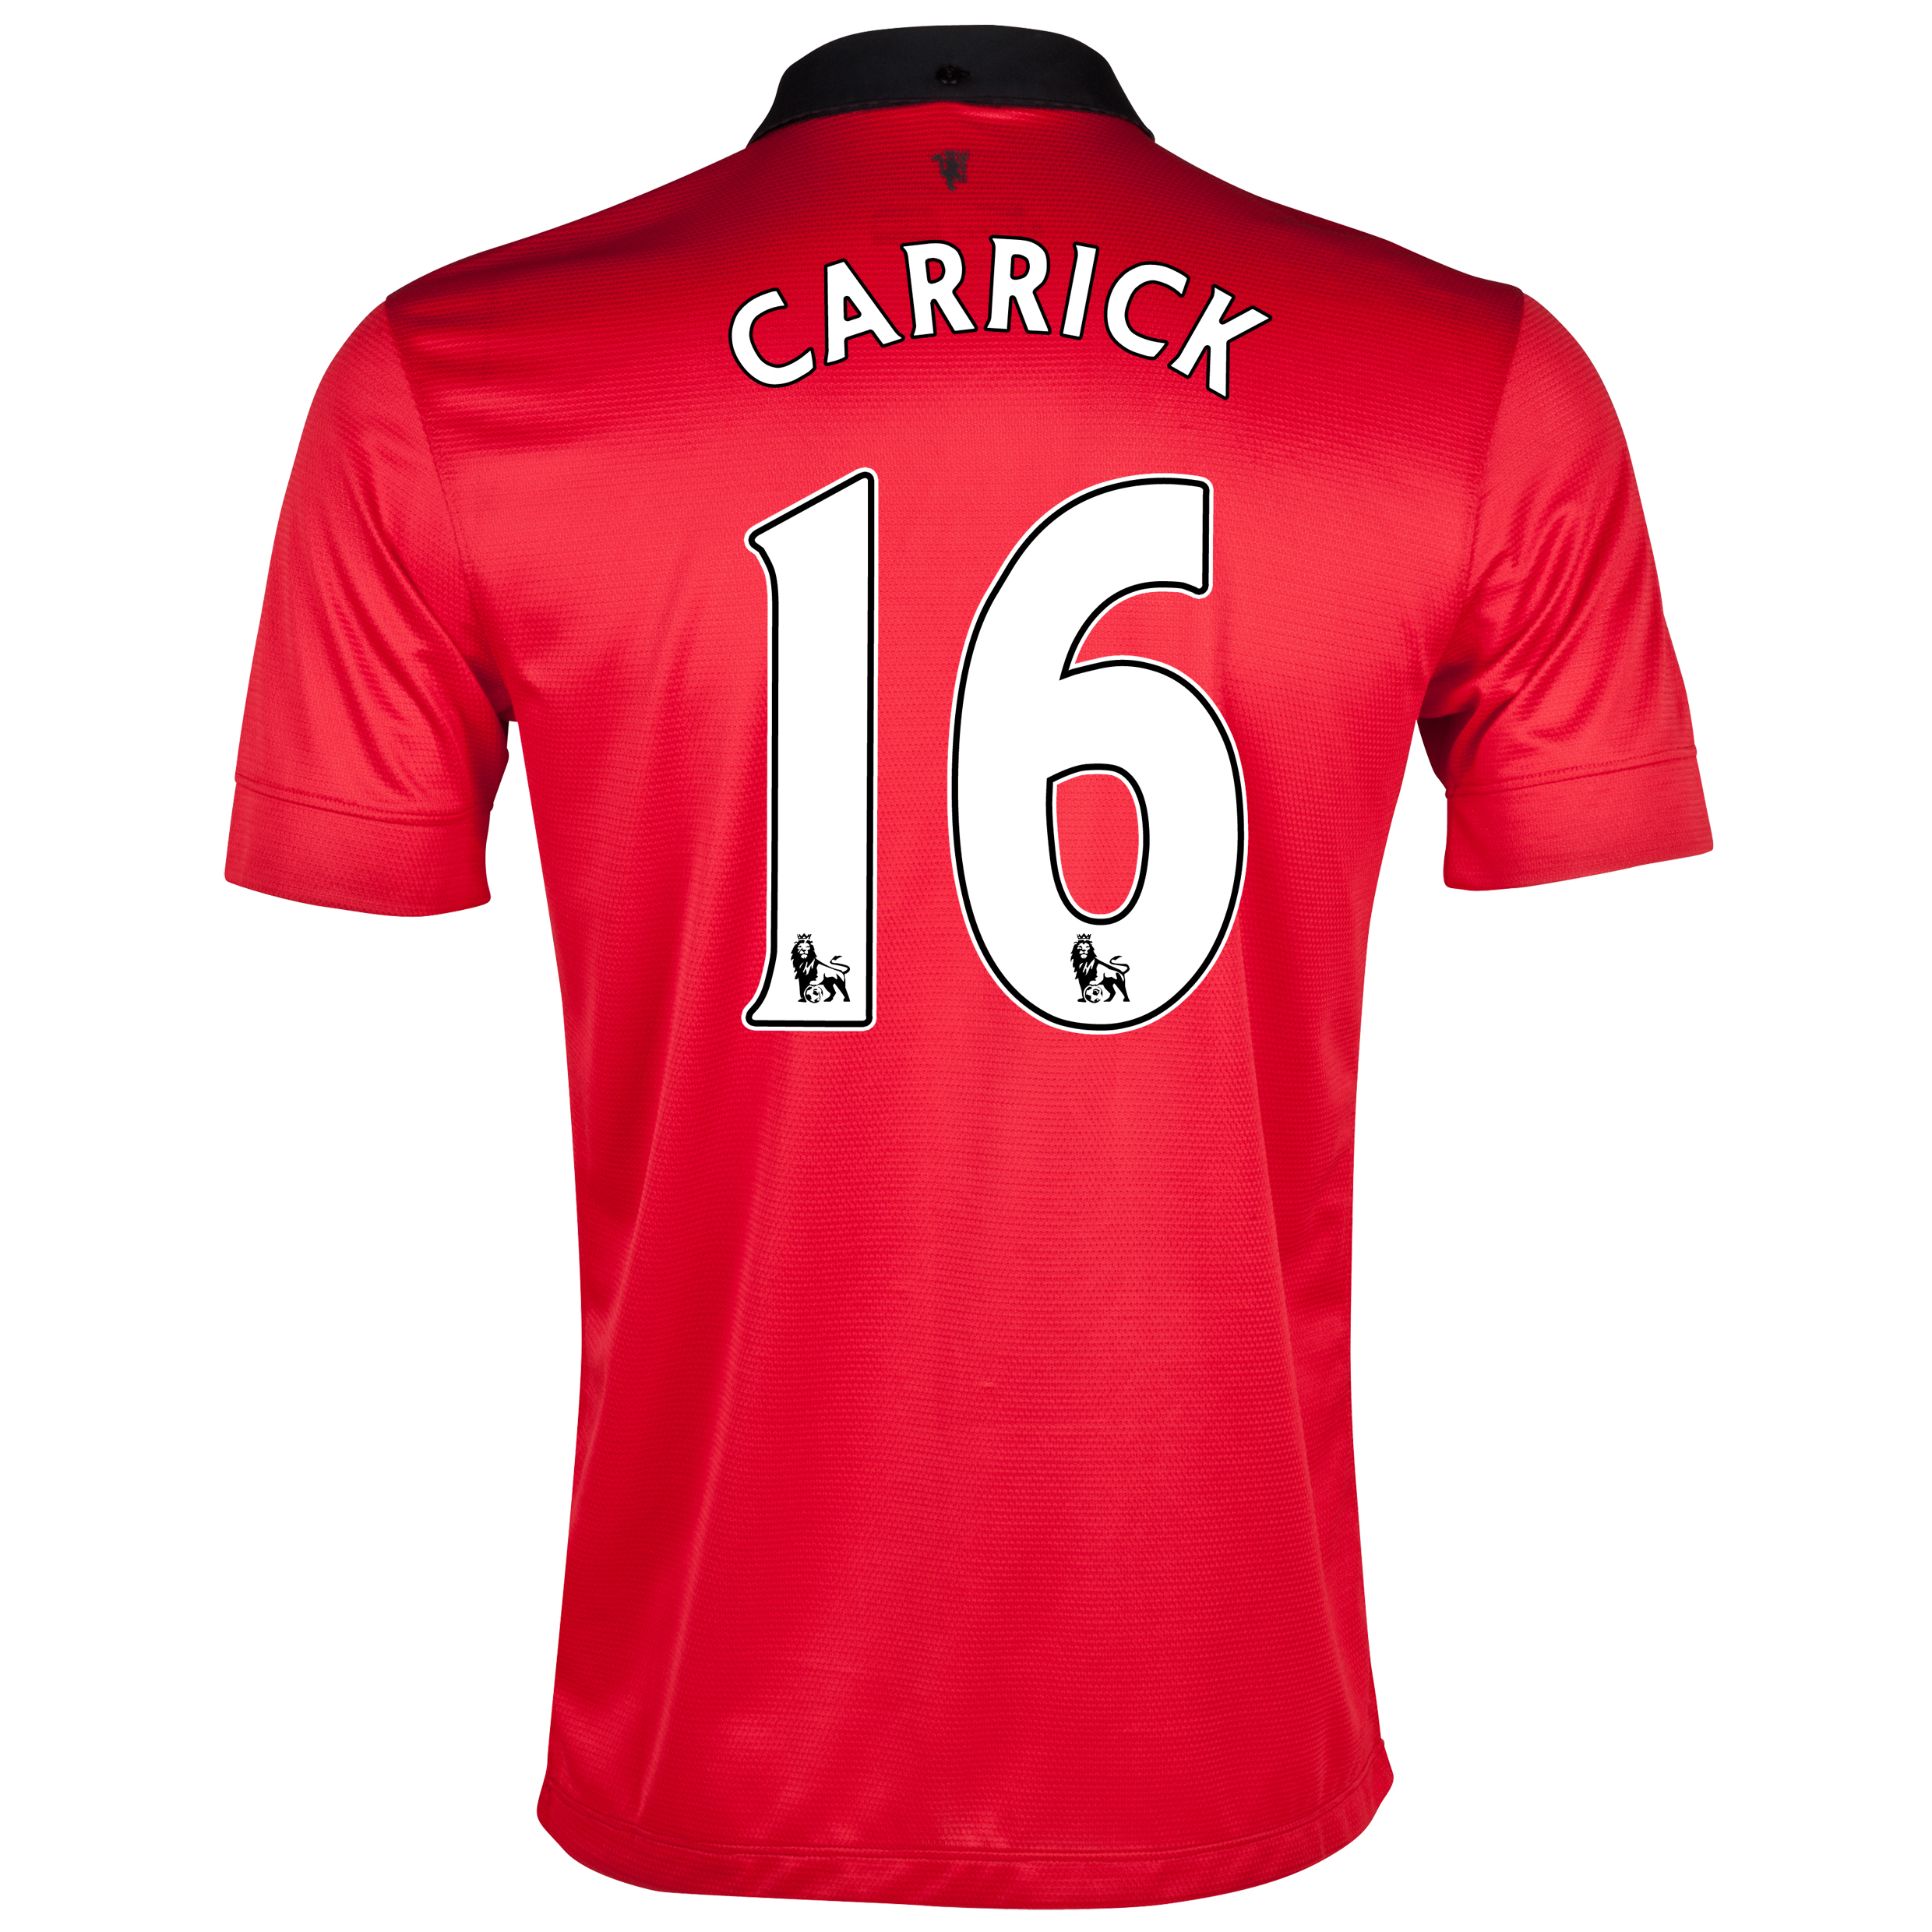 Manchester United Home Shirt 2013/14 with Carrick 16 printing